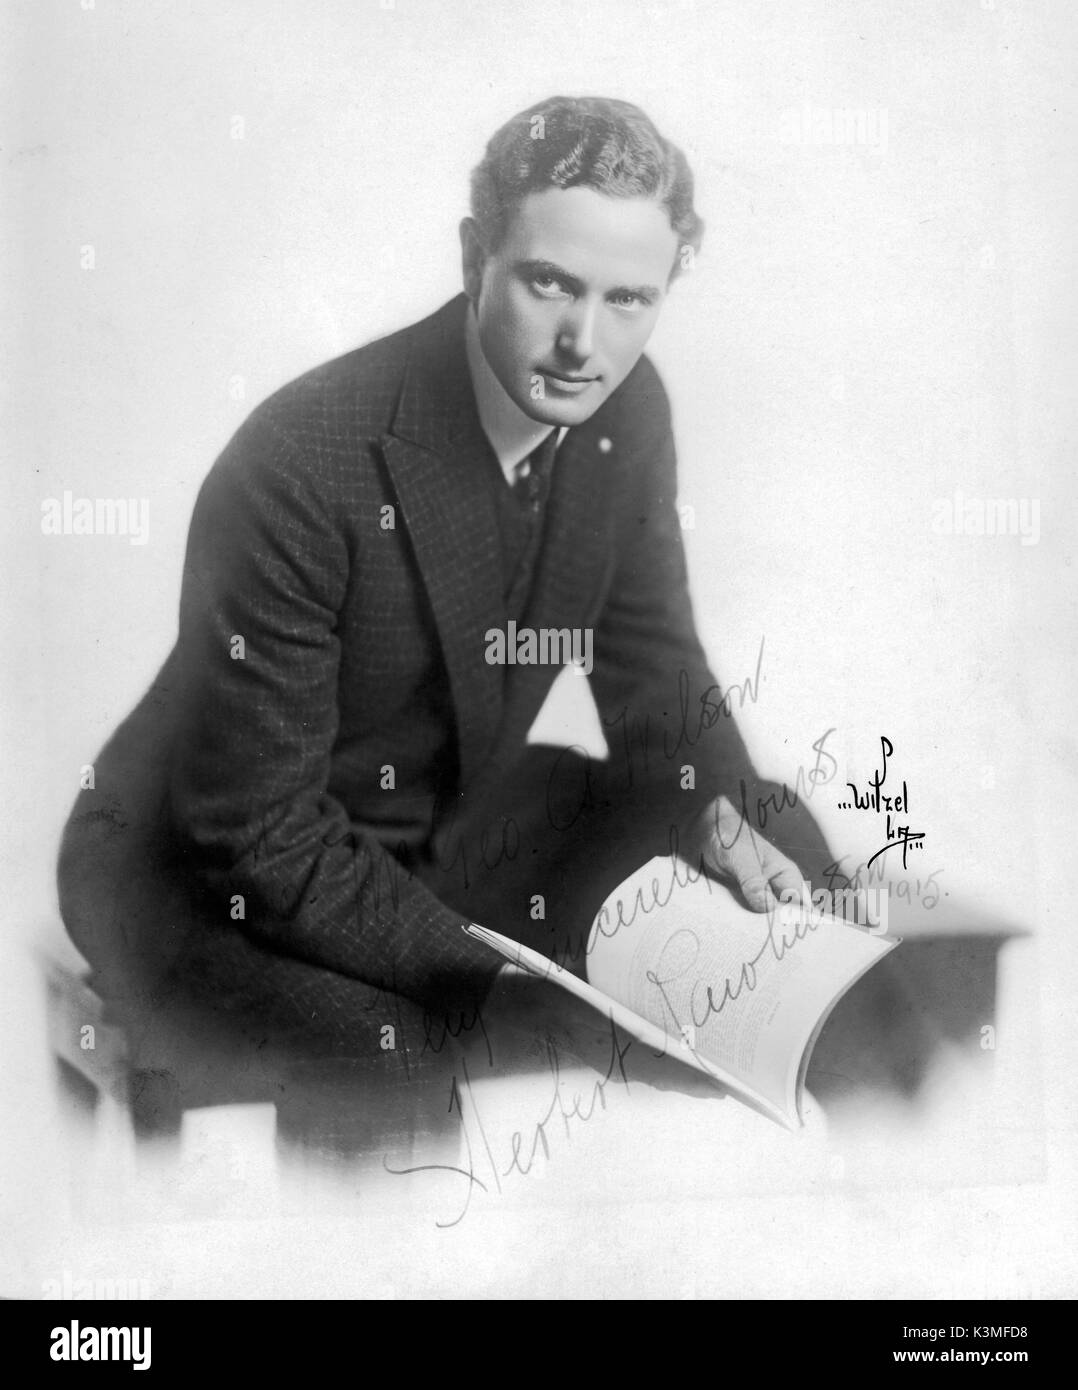 HERBERT RAWLINSON [1885 - 1953] English-born (Brighton) silent film leading man in US productions who successfully     Date: 1953 - Stock Image